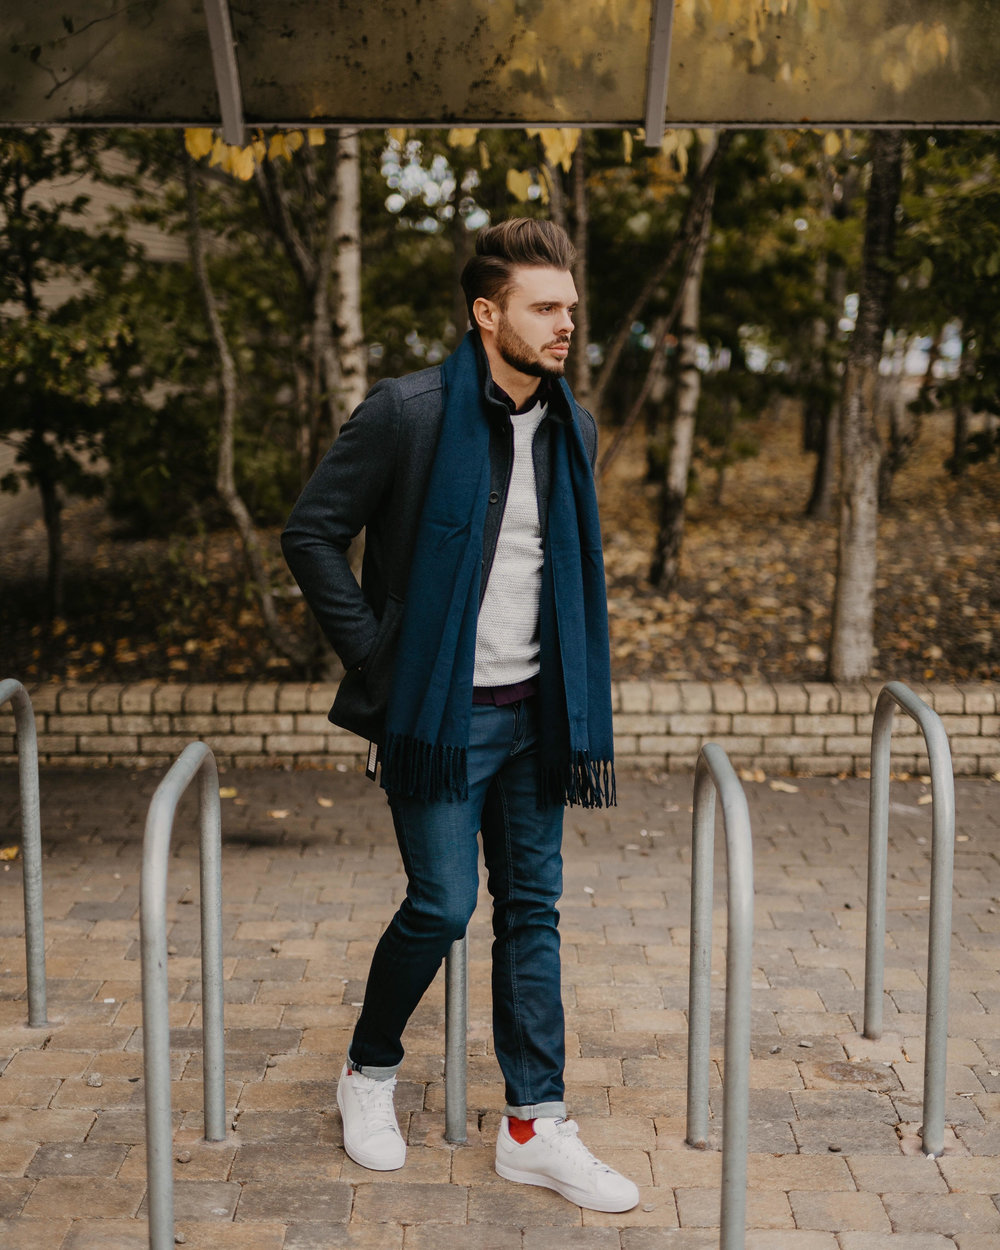 Full outfit from Jack & Jones